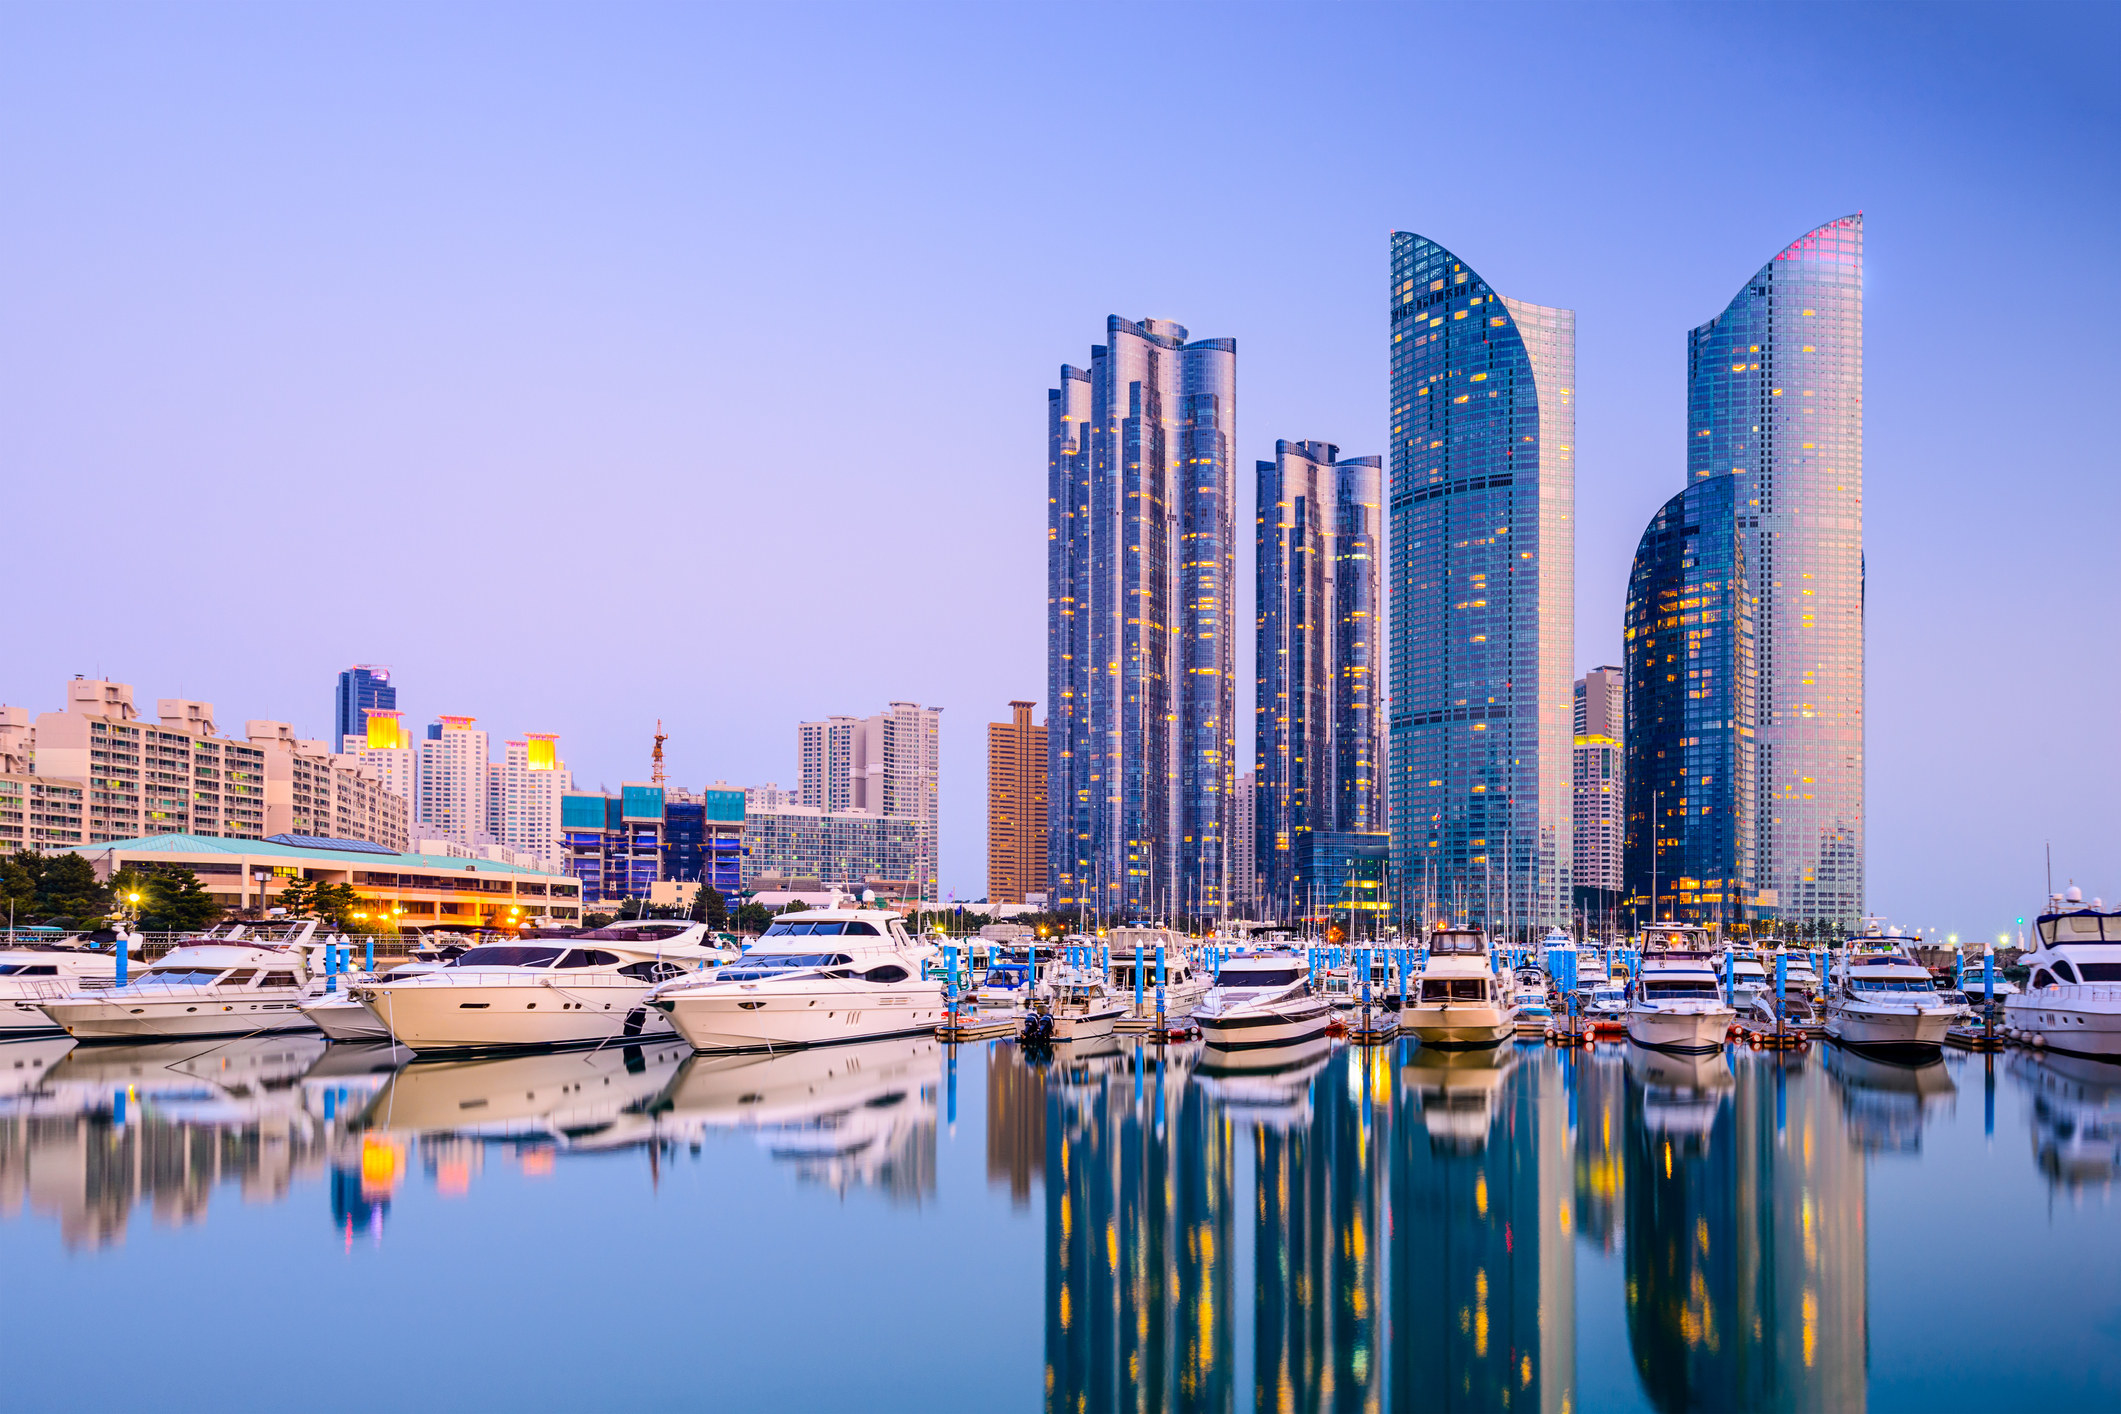 Tall skyscrapers line a harbor filled with boats at twilight